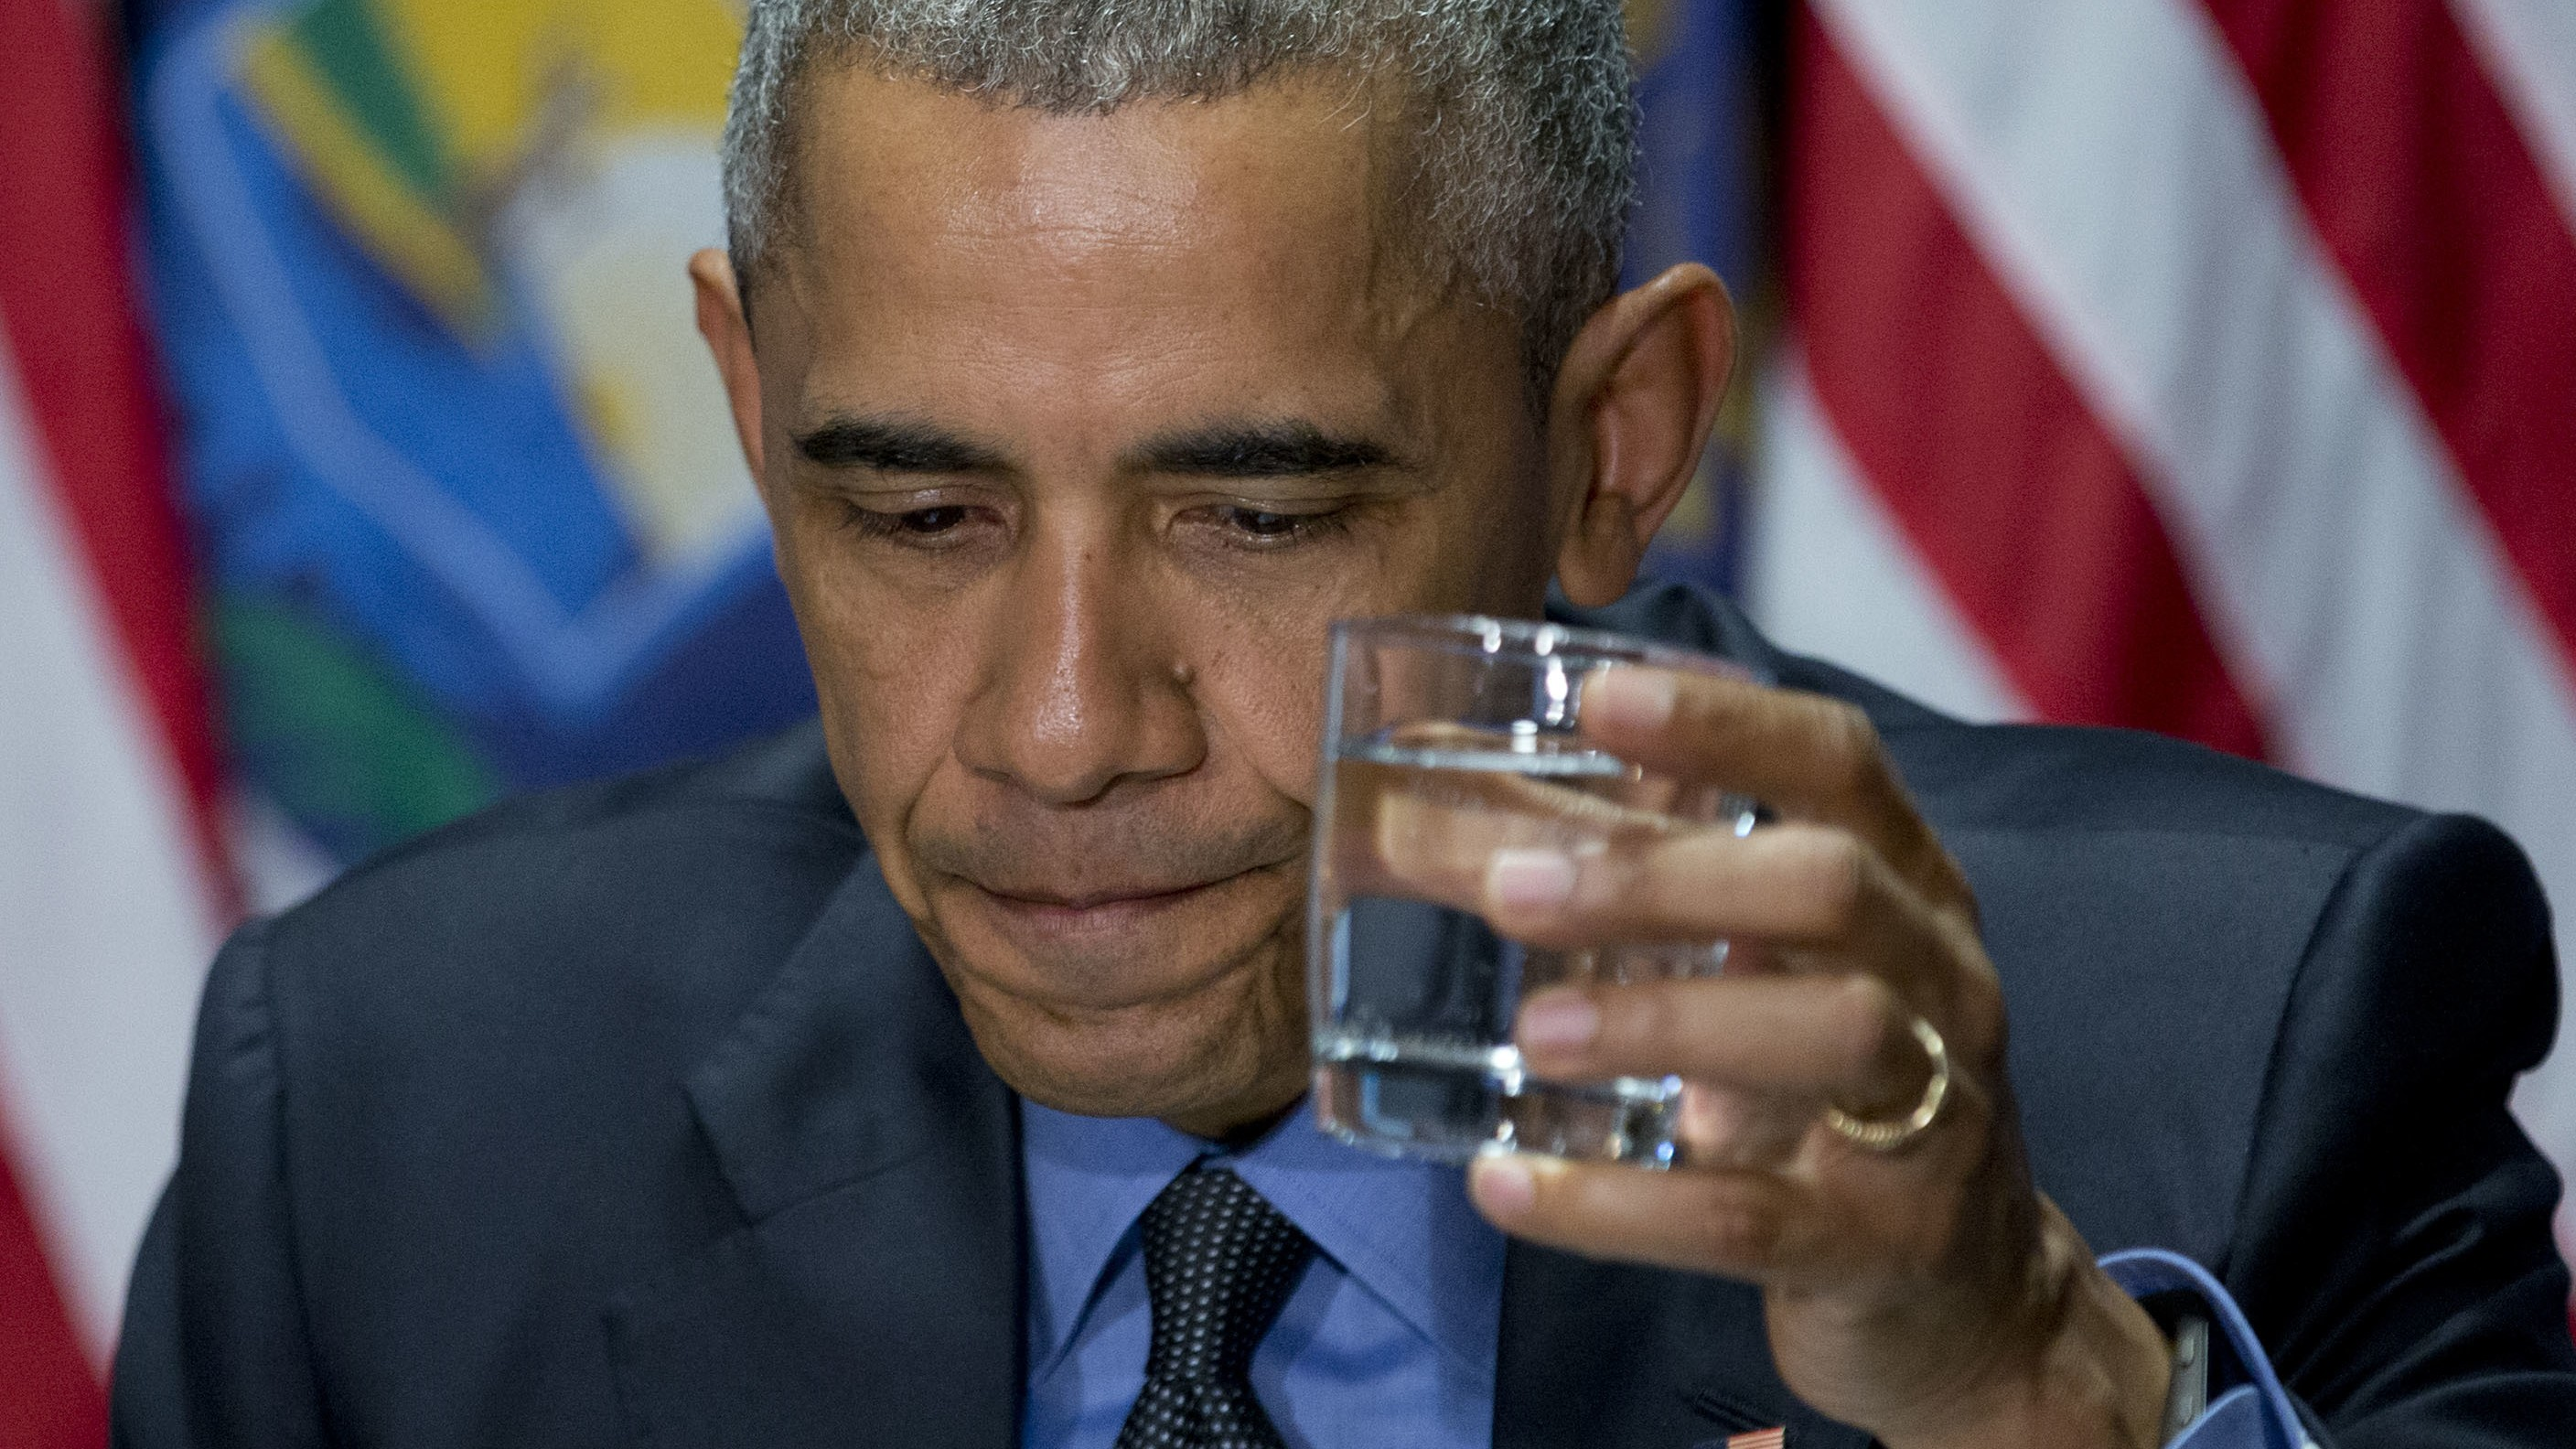 Obama Says It Will Be Two Years Before Flint's Pipes Are Fixed